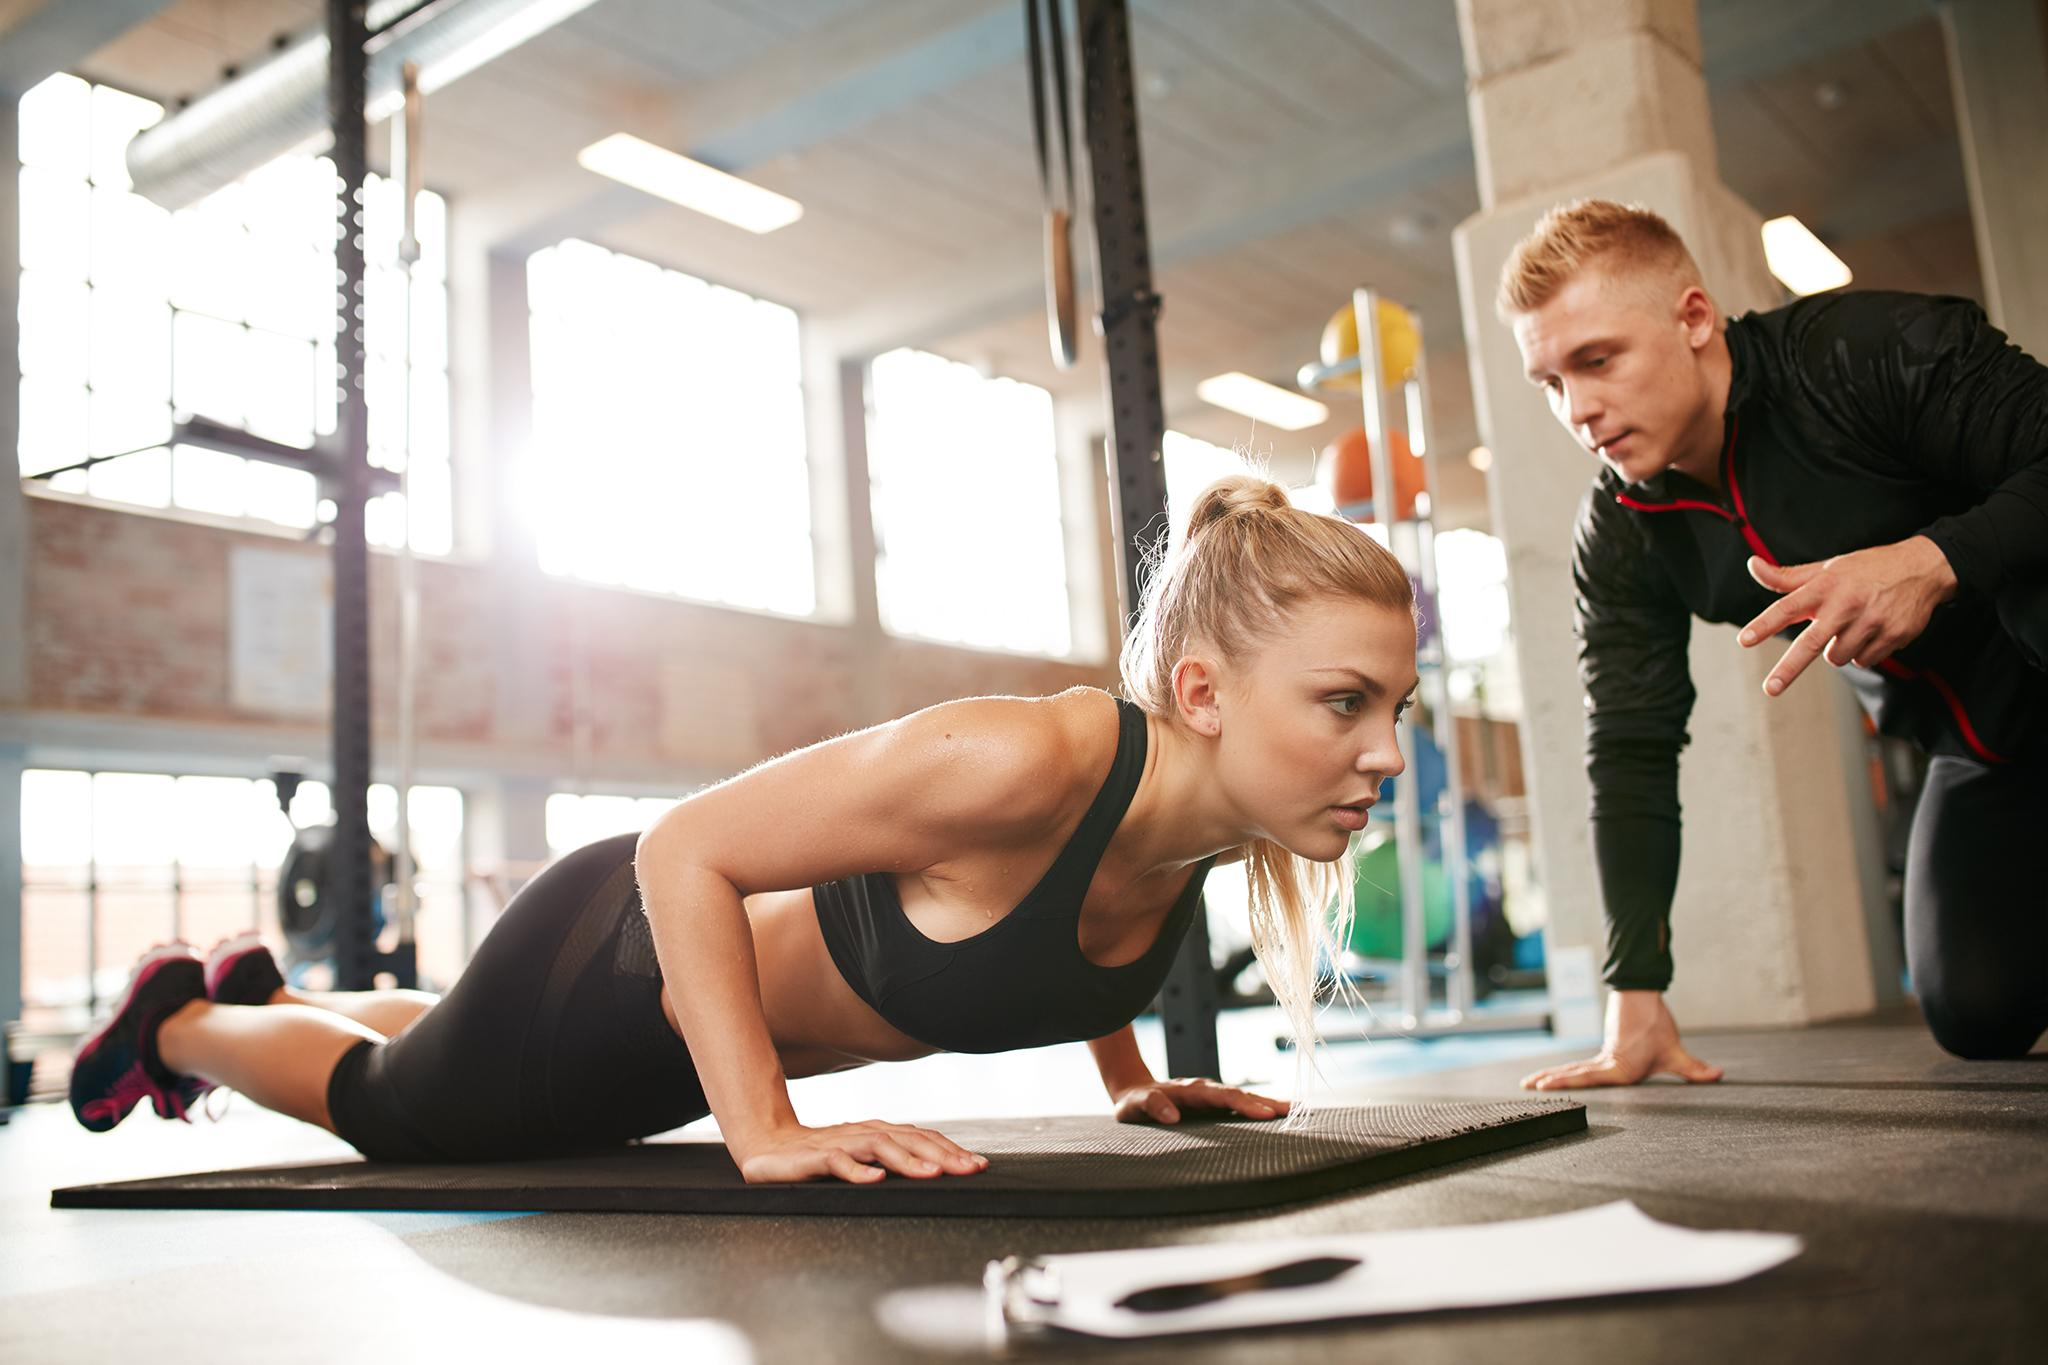 The most common things people are doing wrong in the gym, according to 12 top personal trainers